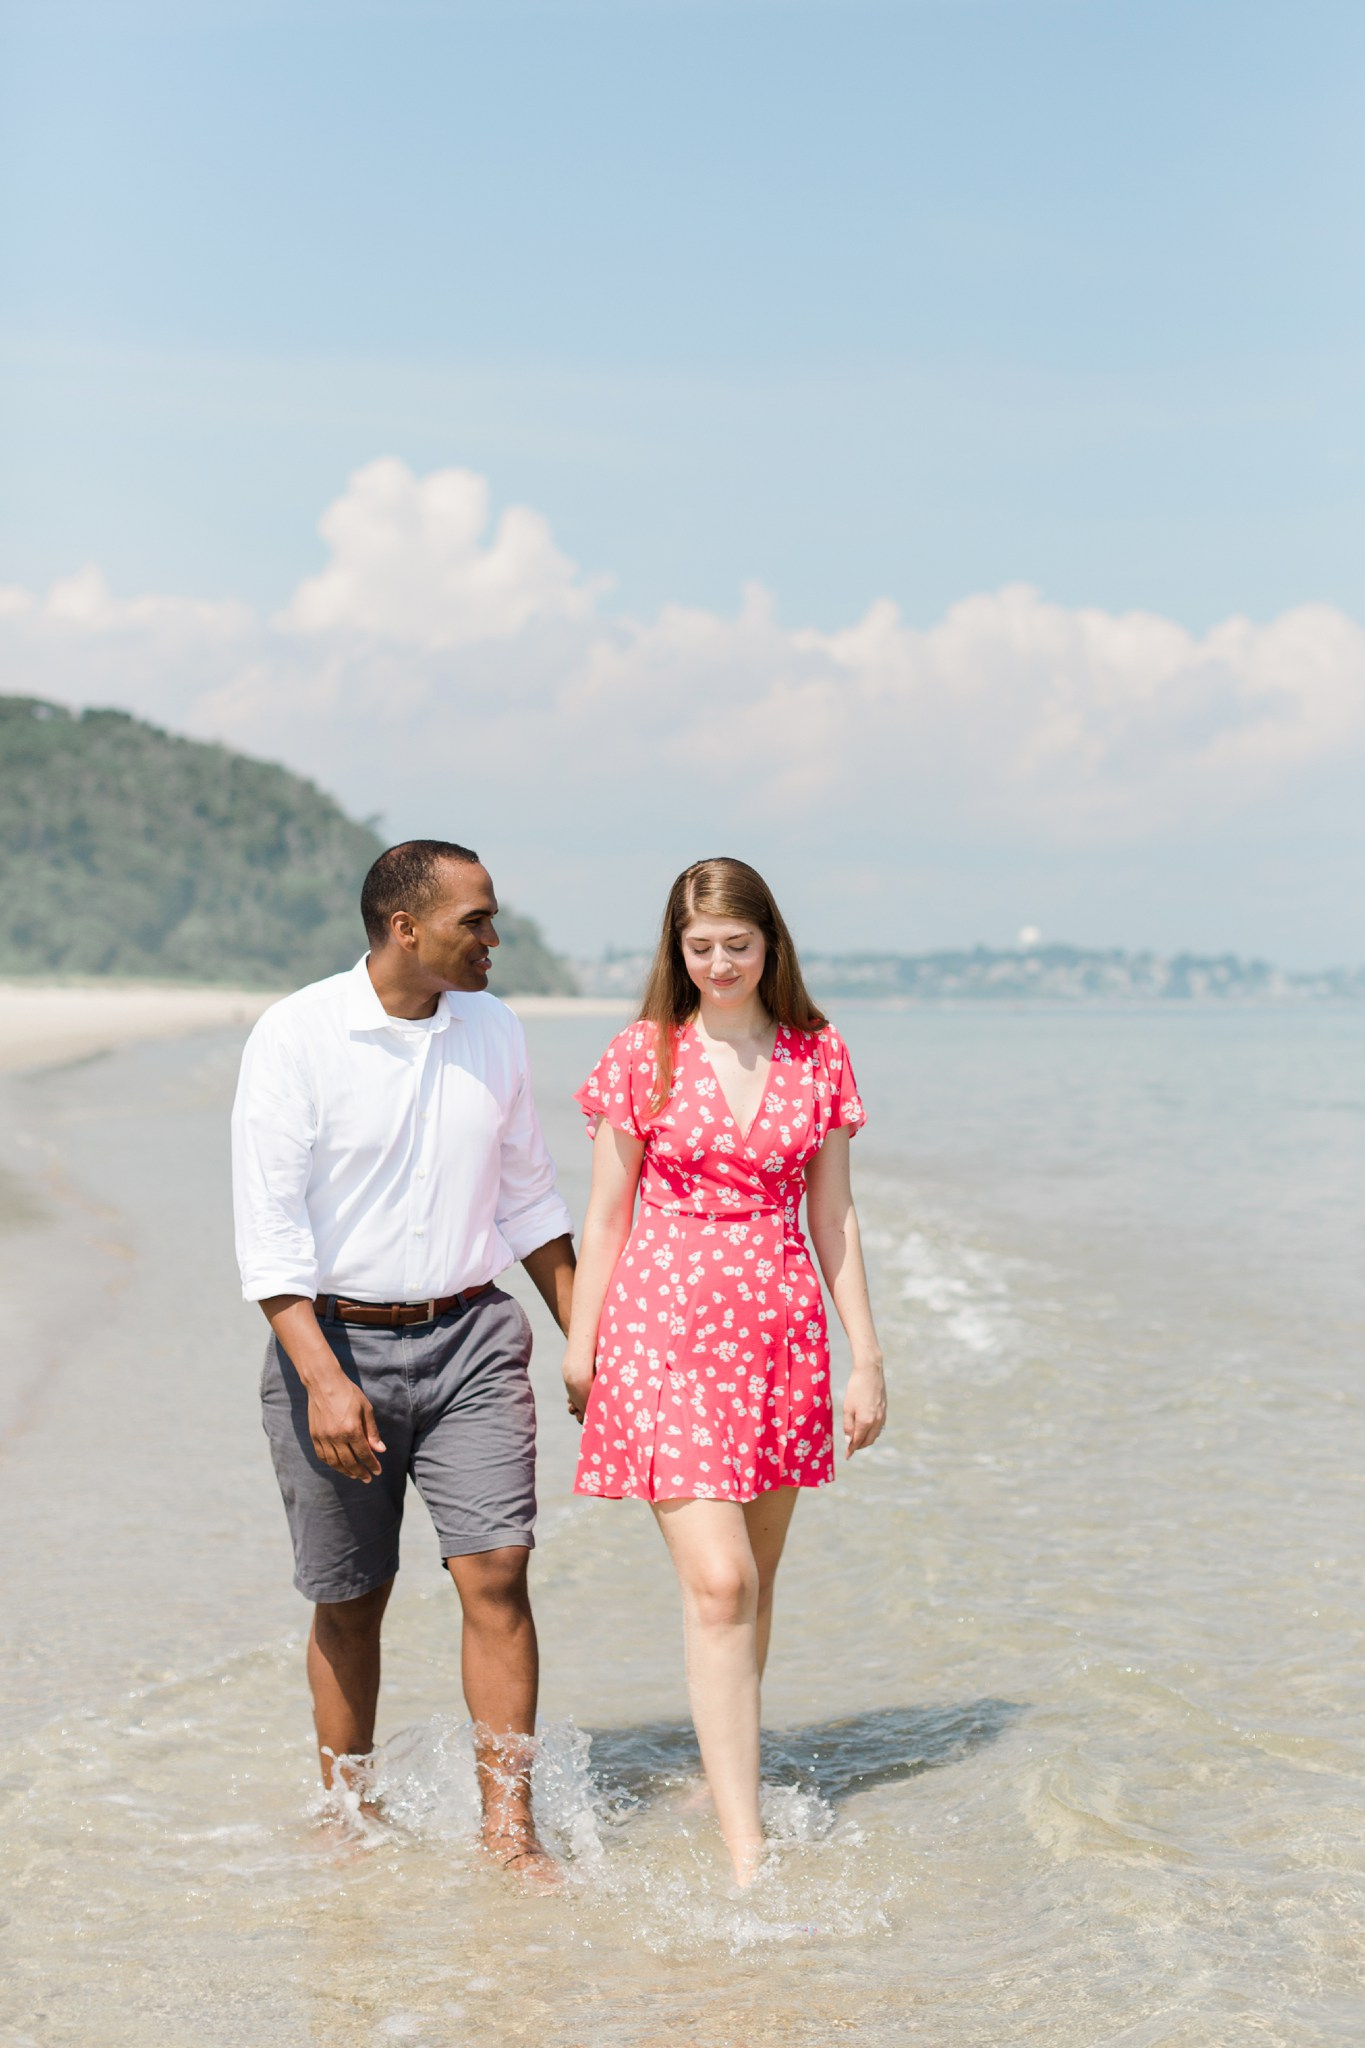 crane_beach_engagement_session_00009.JPG